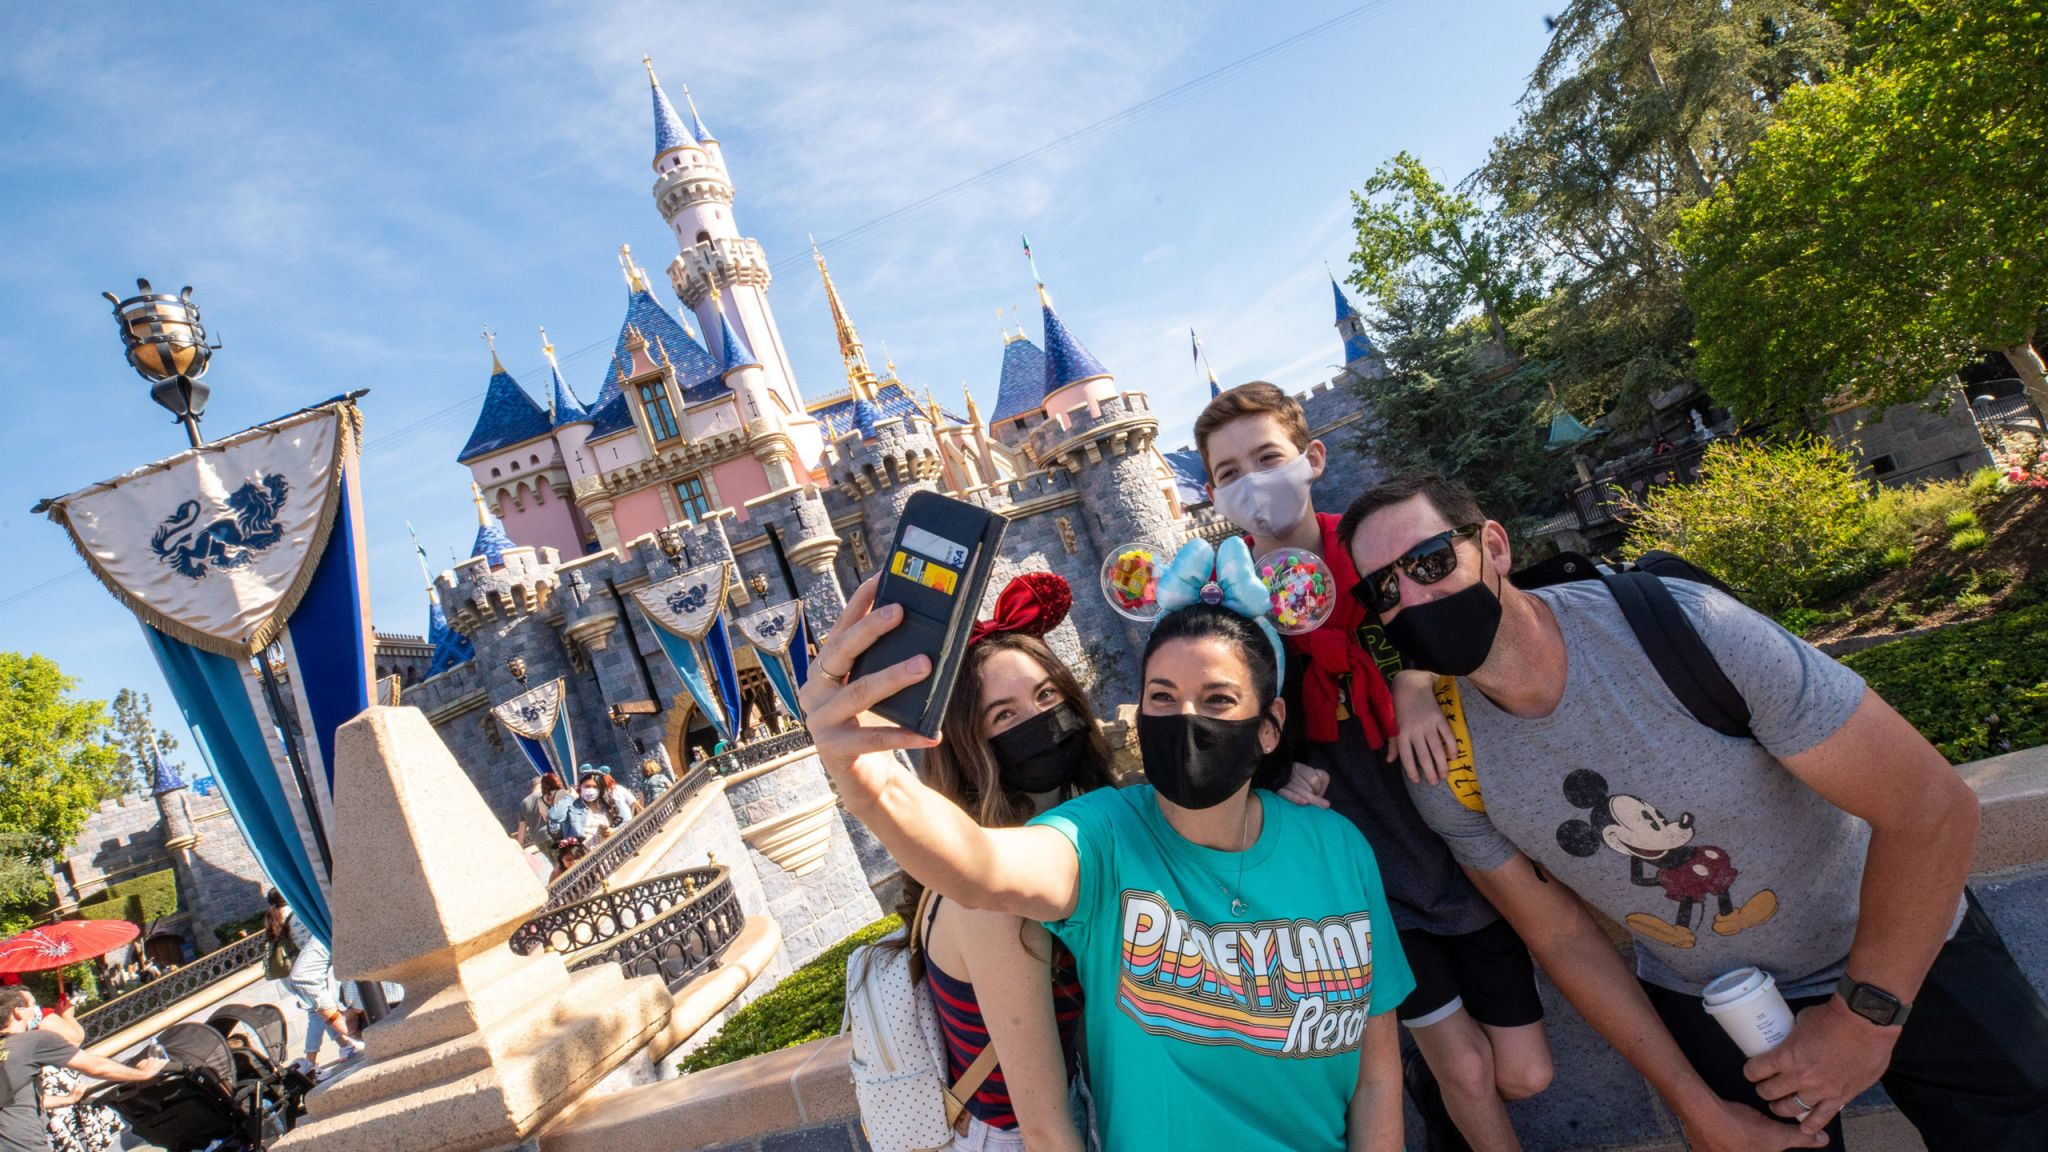 What happens when Disneyland's biggest fans can't afford it?